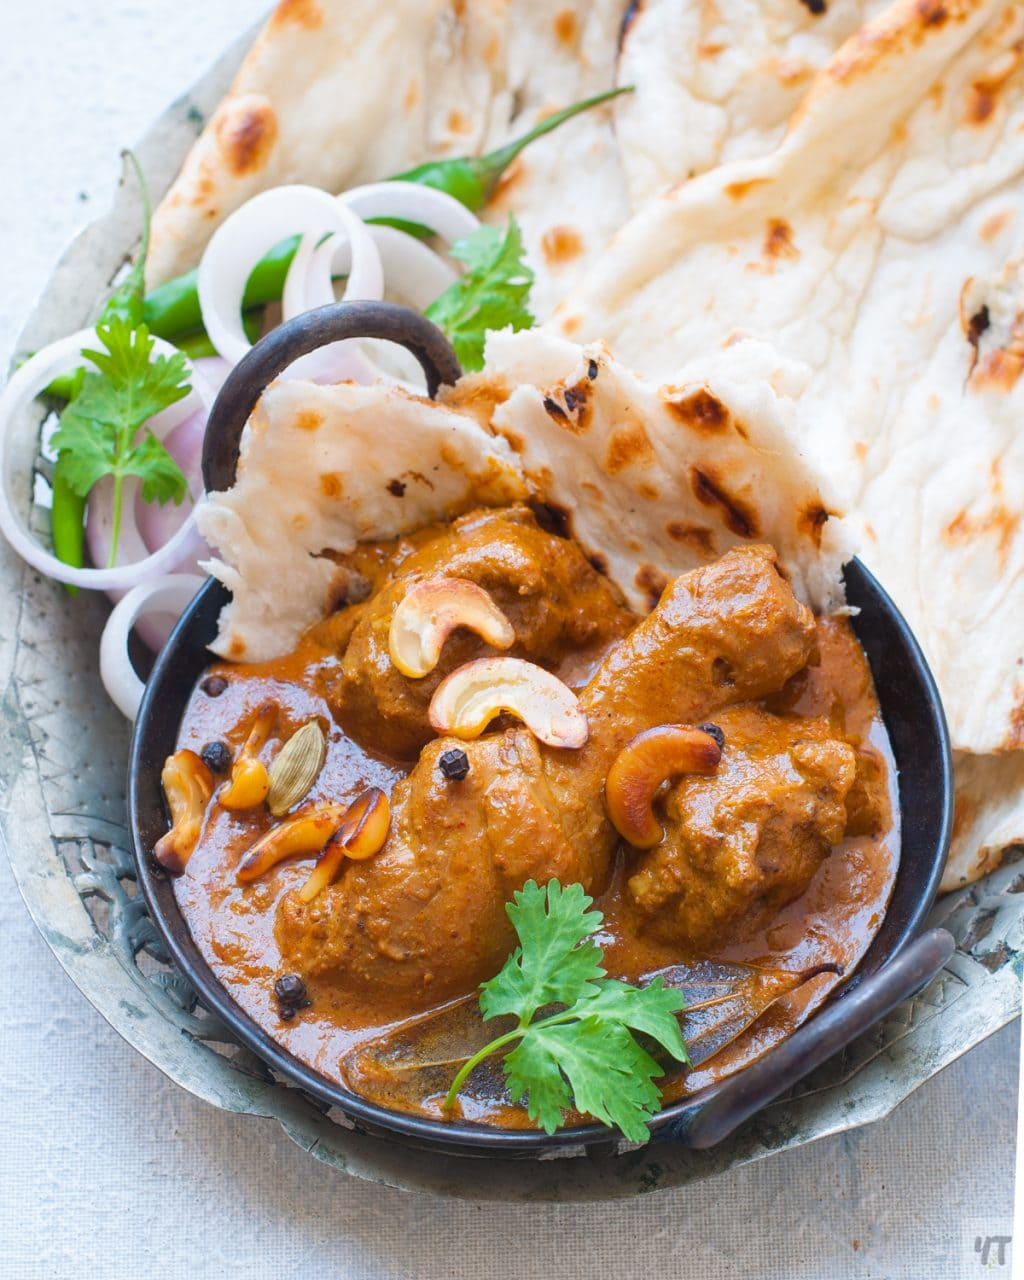 Mughlai Chicken Korma -North Indian Chicken Curry made Cashews,Poppy Seeds and whole Spices.A quick Instant Pot recipe and slow stove top recipe included. #instantpot #korma #chickenkorma #mughlai #northindianchicken #chickencurry